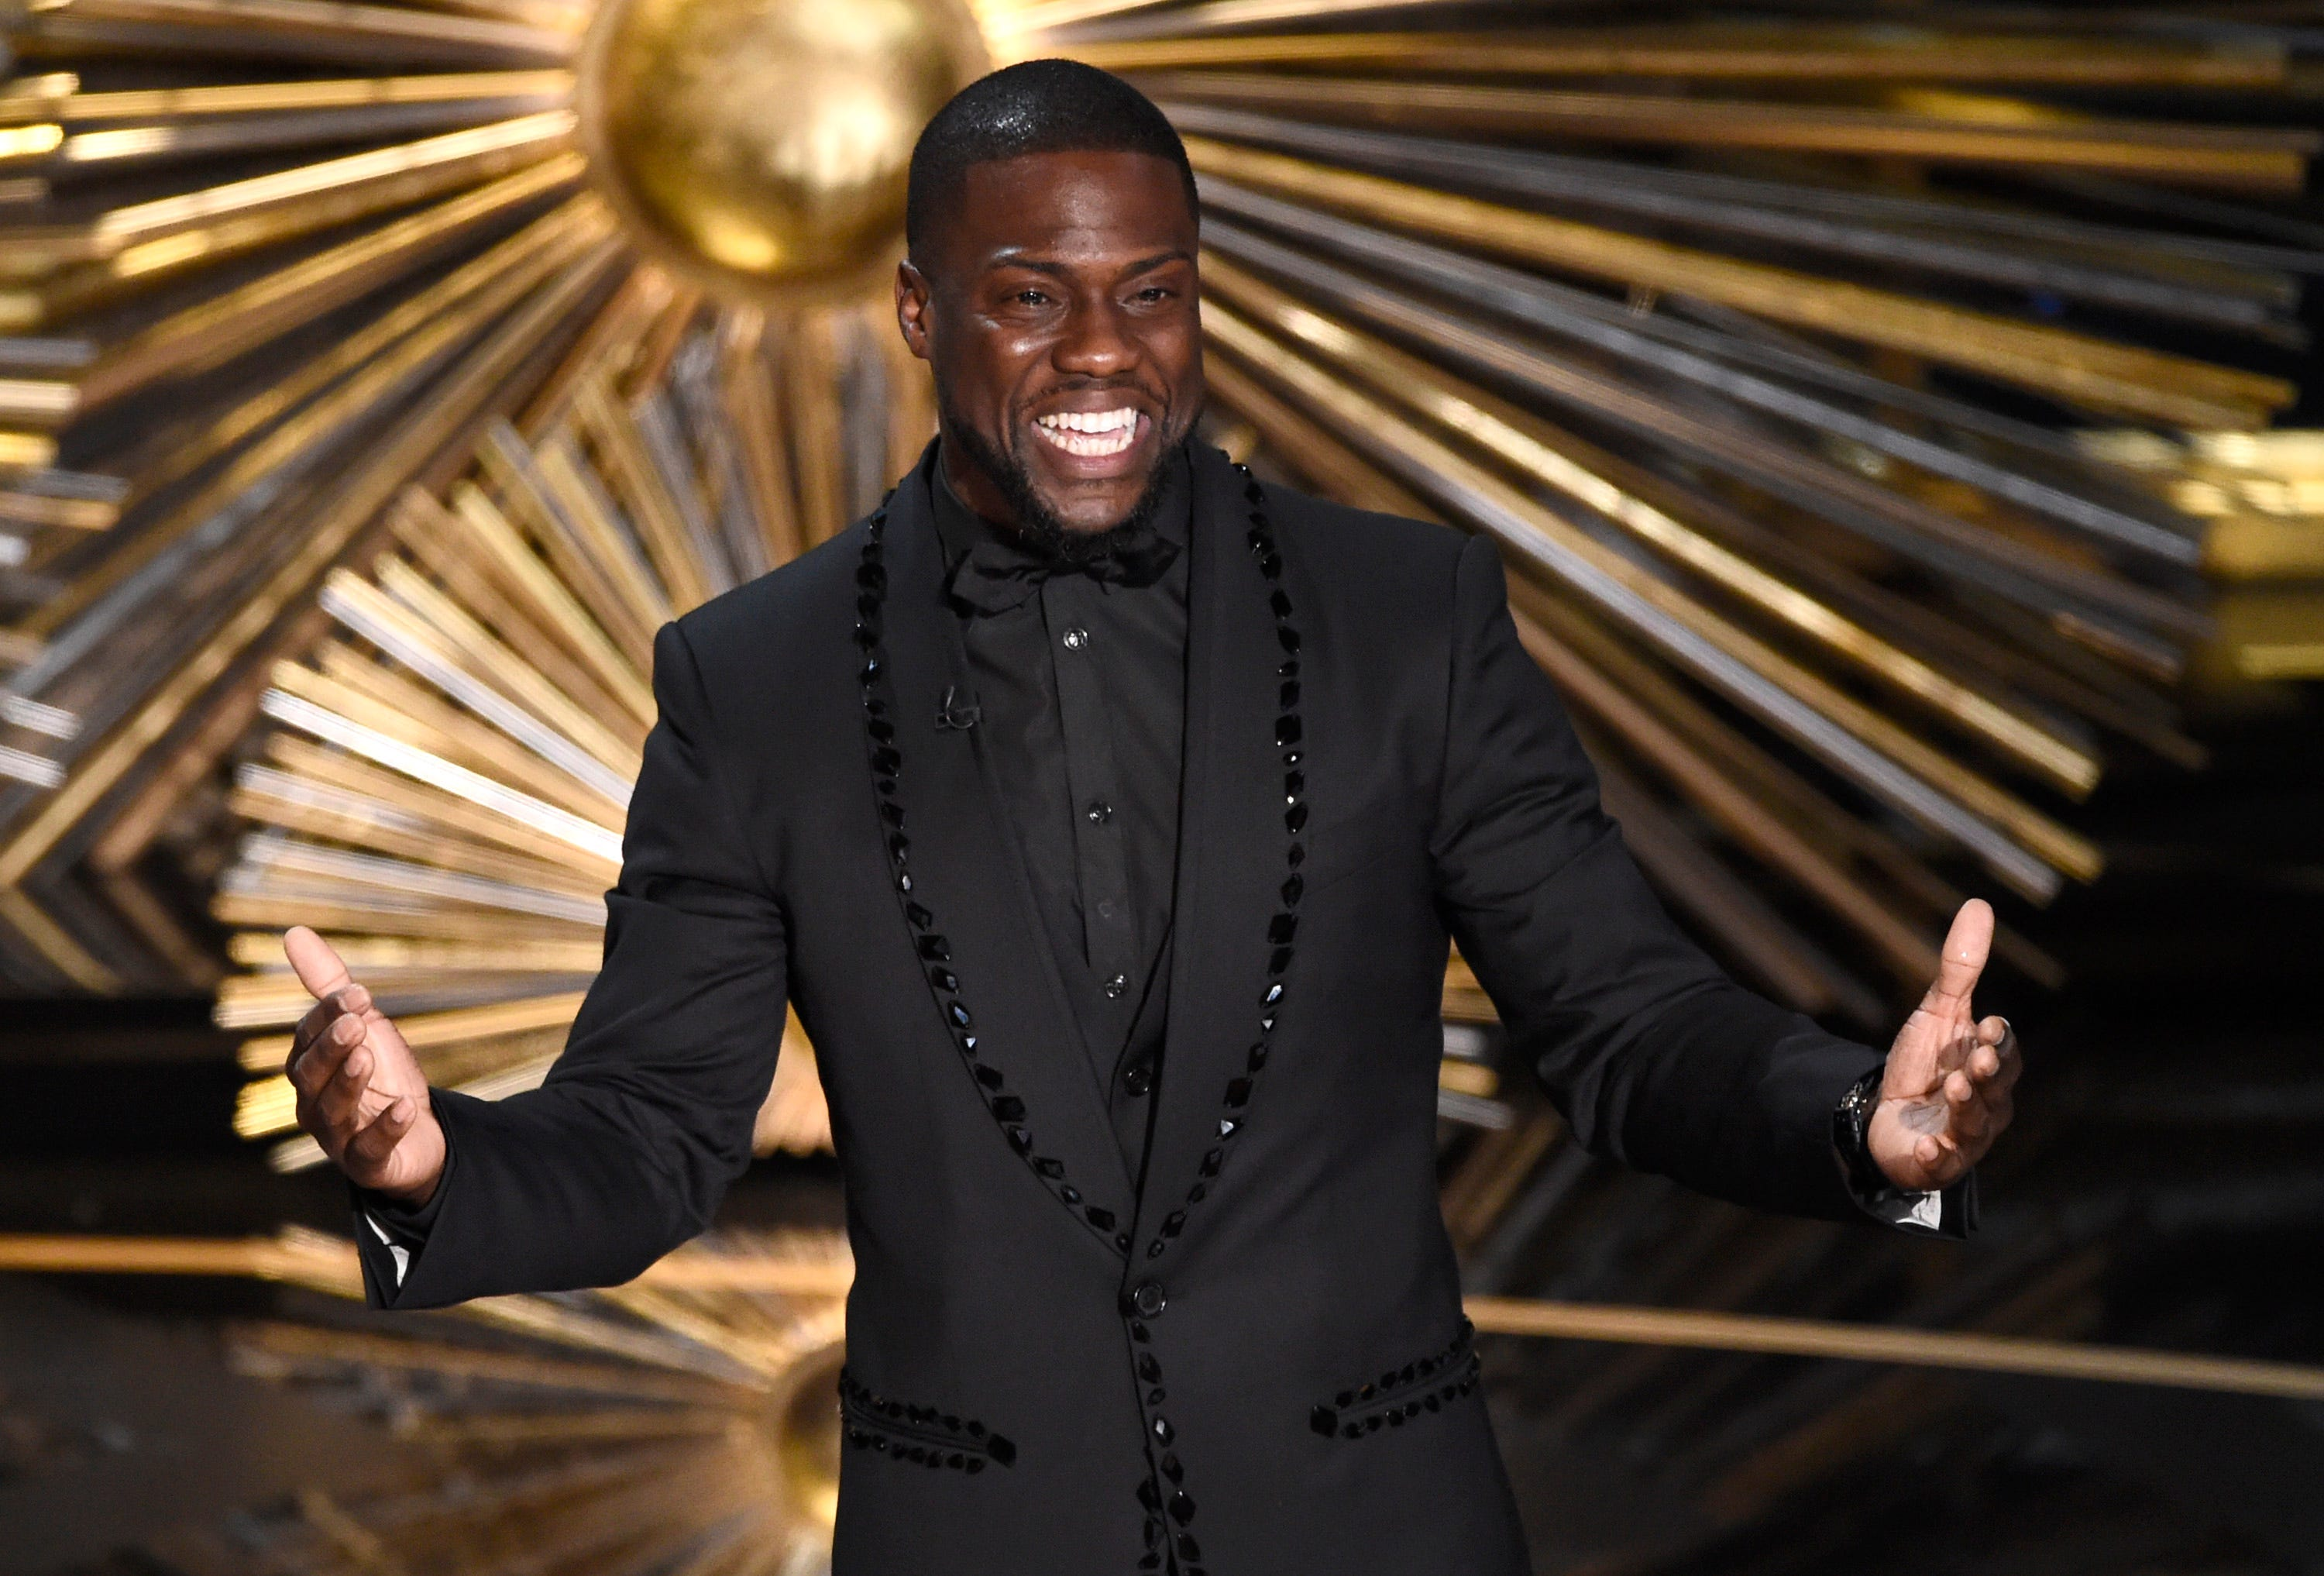 Oscar host Kevin Hart dismisses critics of his past homophobic comments: 'I live to love'